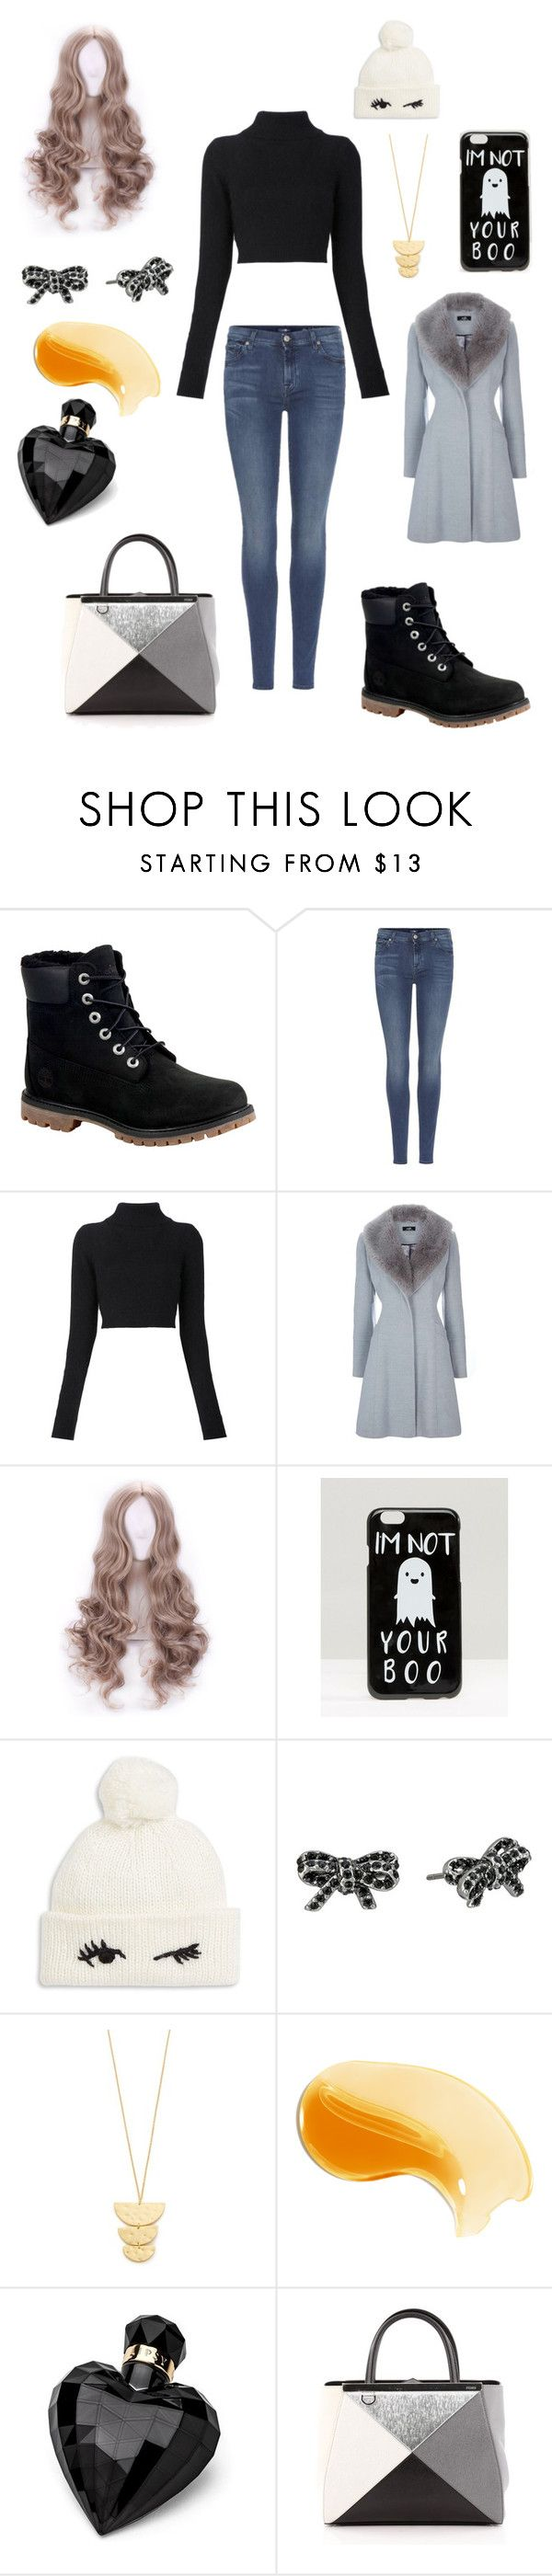 """""""Sans titre #2148"""" by amandine-collet on Polyvore featuring mode, Timberland, 7 For All Mankind, Balmain, ASOS, Kate Spade, Marc Jacobs, Gorjana, Lipsy et Fendi"""